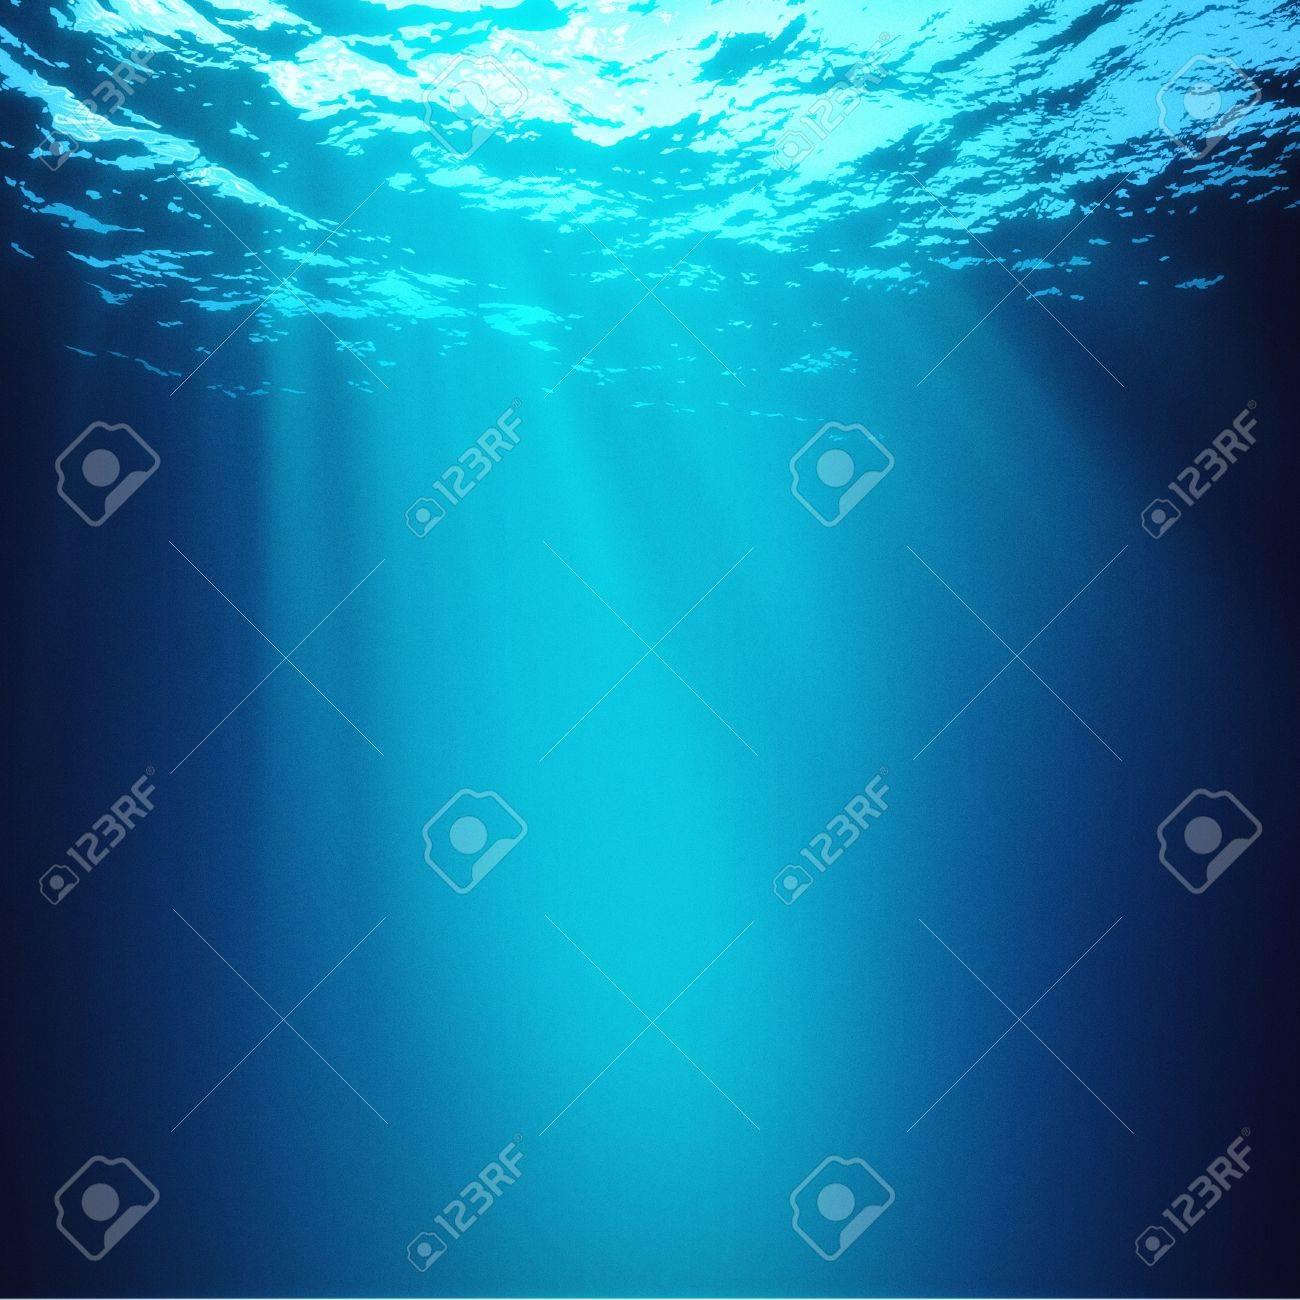 Abyss. Abstract underwater backgrounds - 20443716